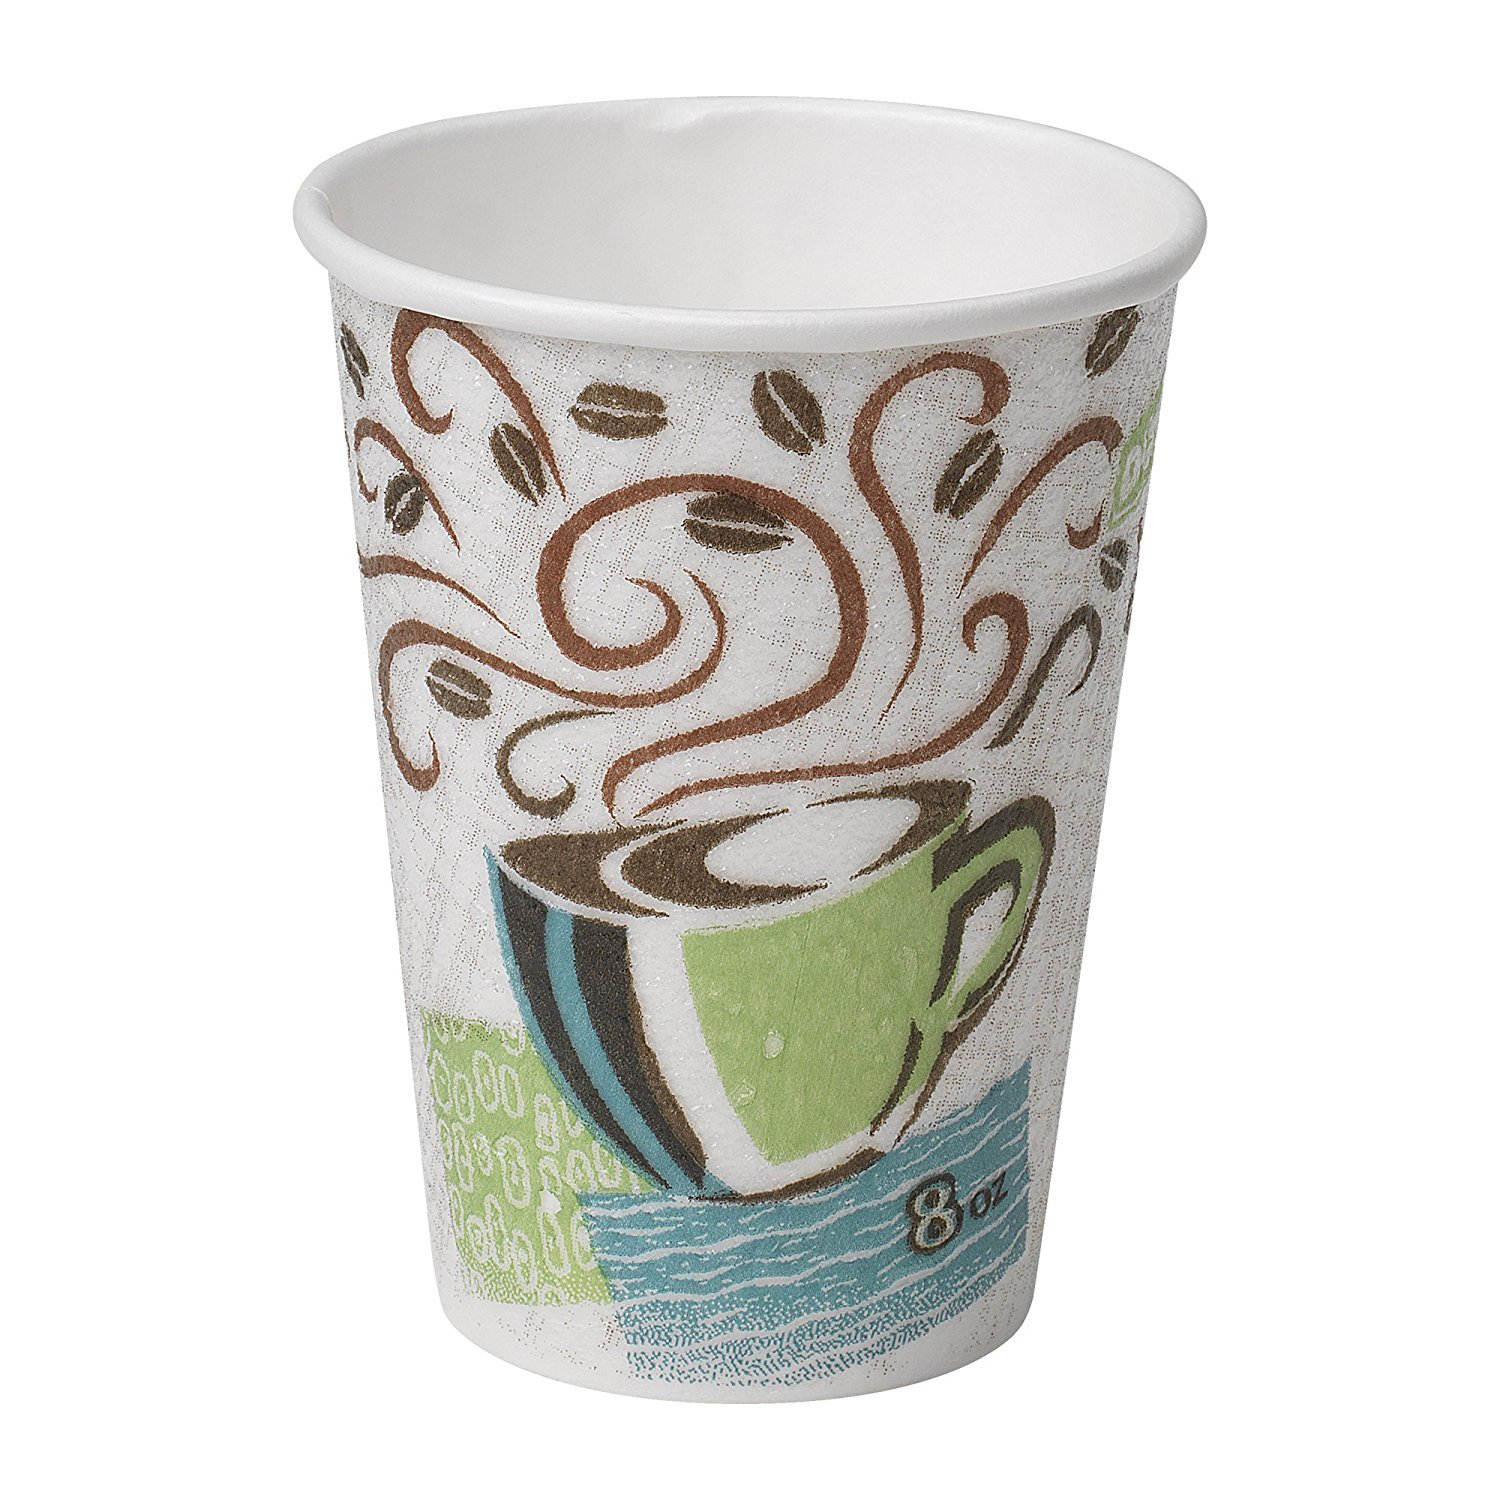 5342DX, 500 Cups .1 Pack Georgia-Pacific Dixie PerfecTouch 12 Oz Insulated Paper Hot Coffee Cup by GP PRO Coffee Haze 25 Cups Per Sleeve, 20 Sleeves Per Case